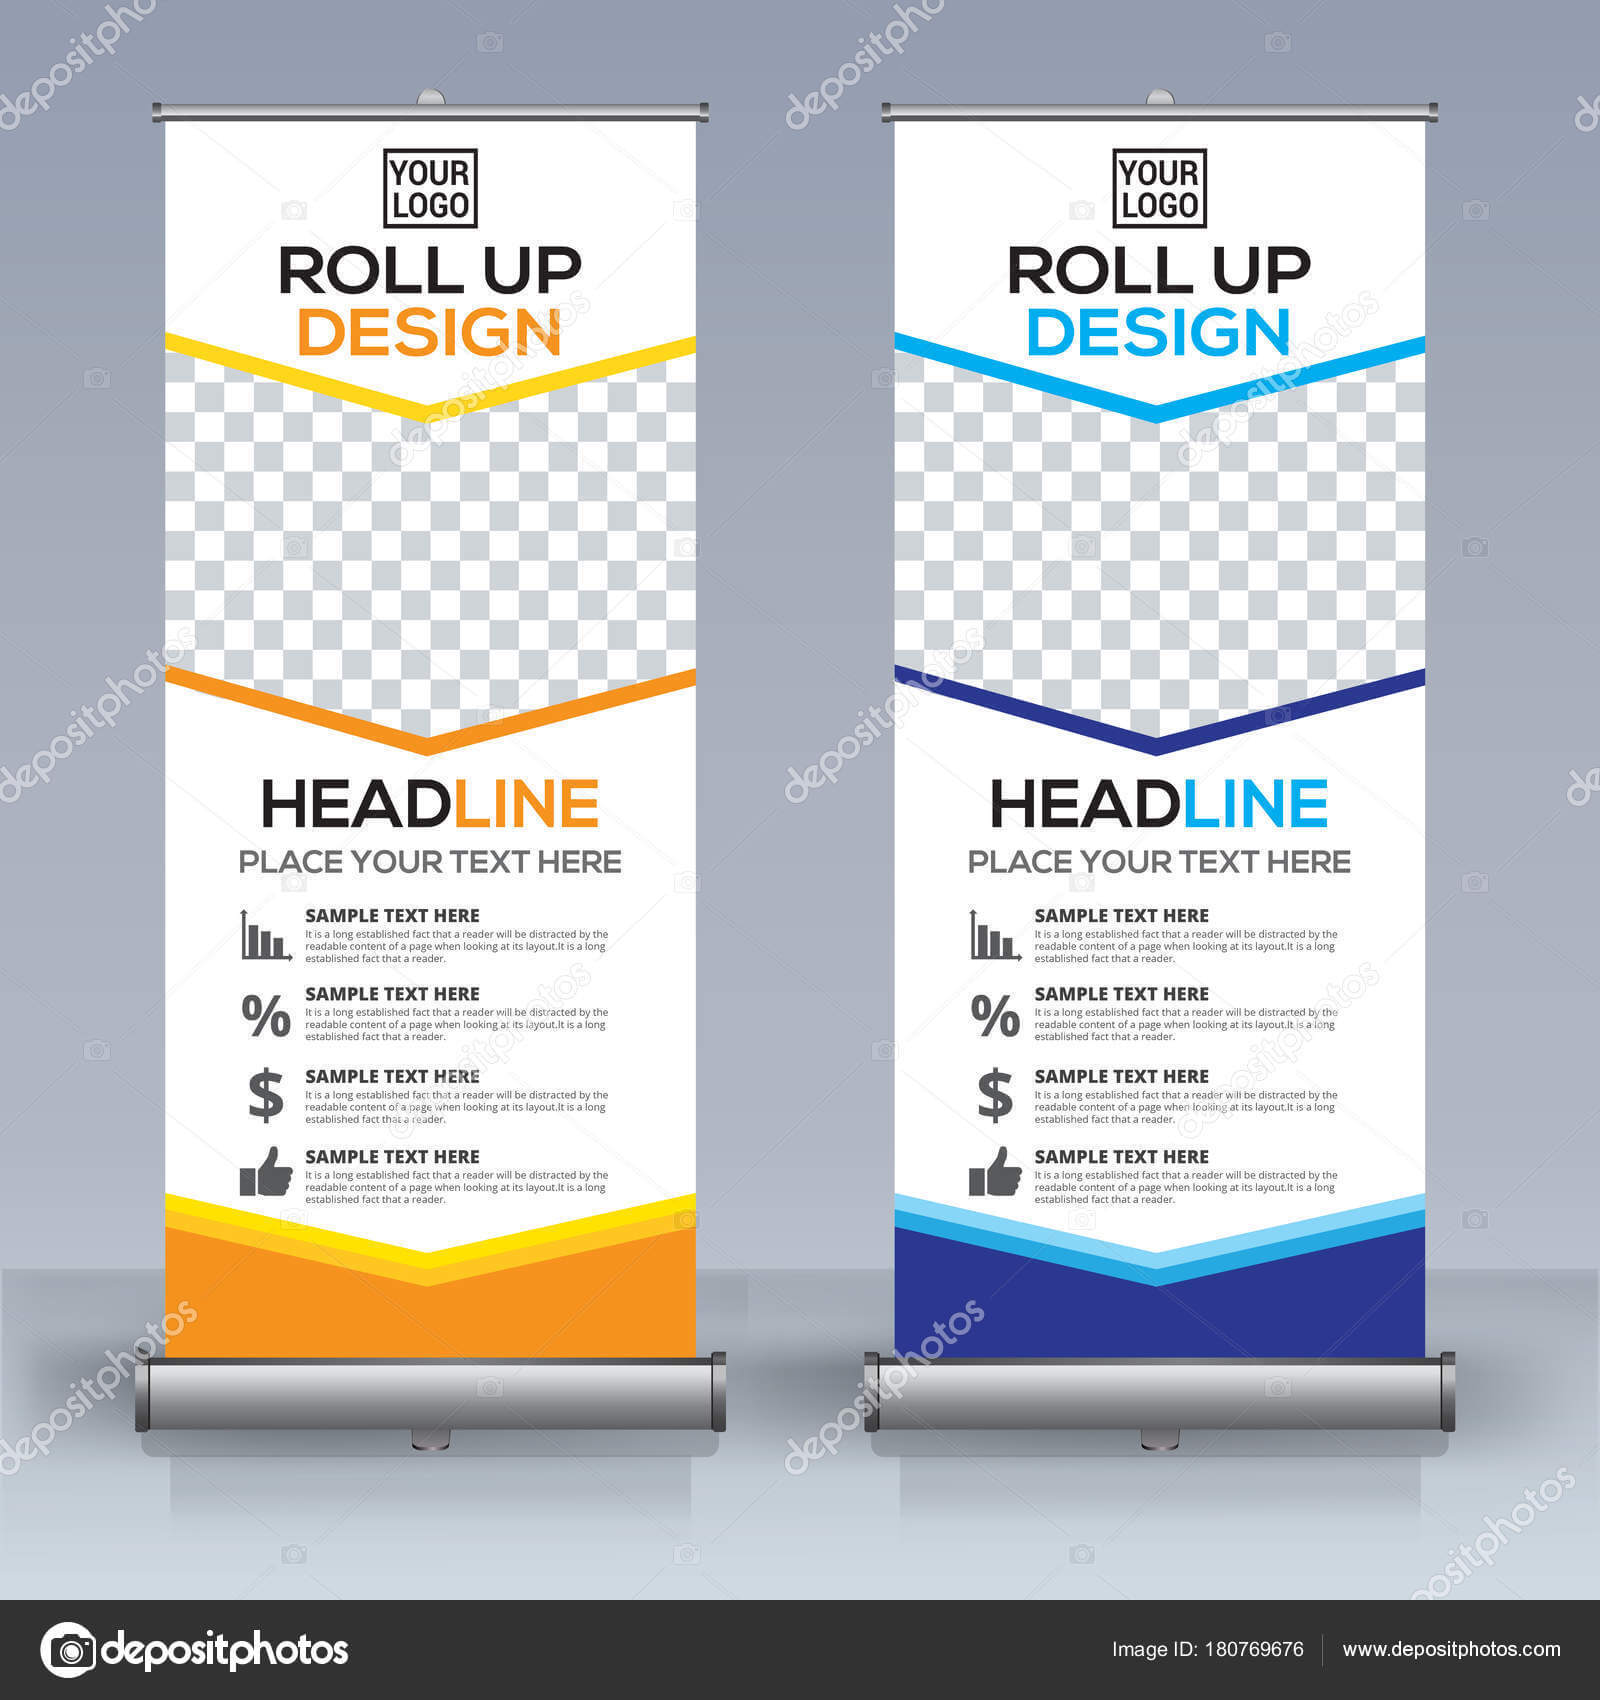 Roll Banner Design Template Vertical Abstract Background pertaining to Retractable Banner Design Templates